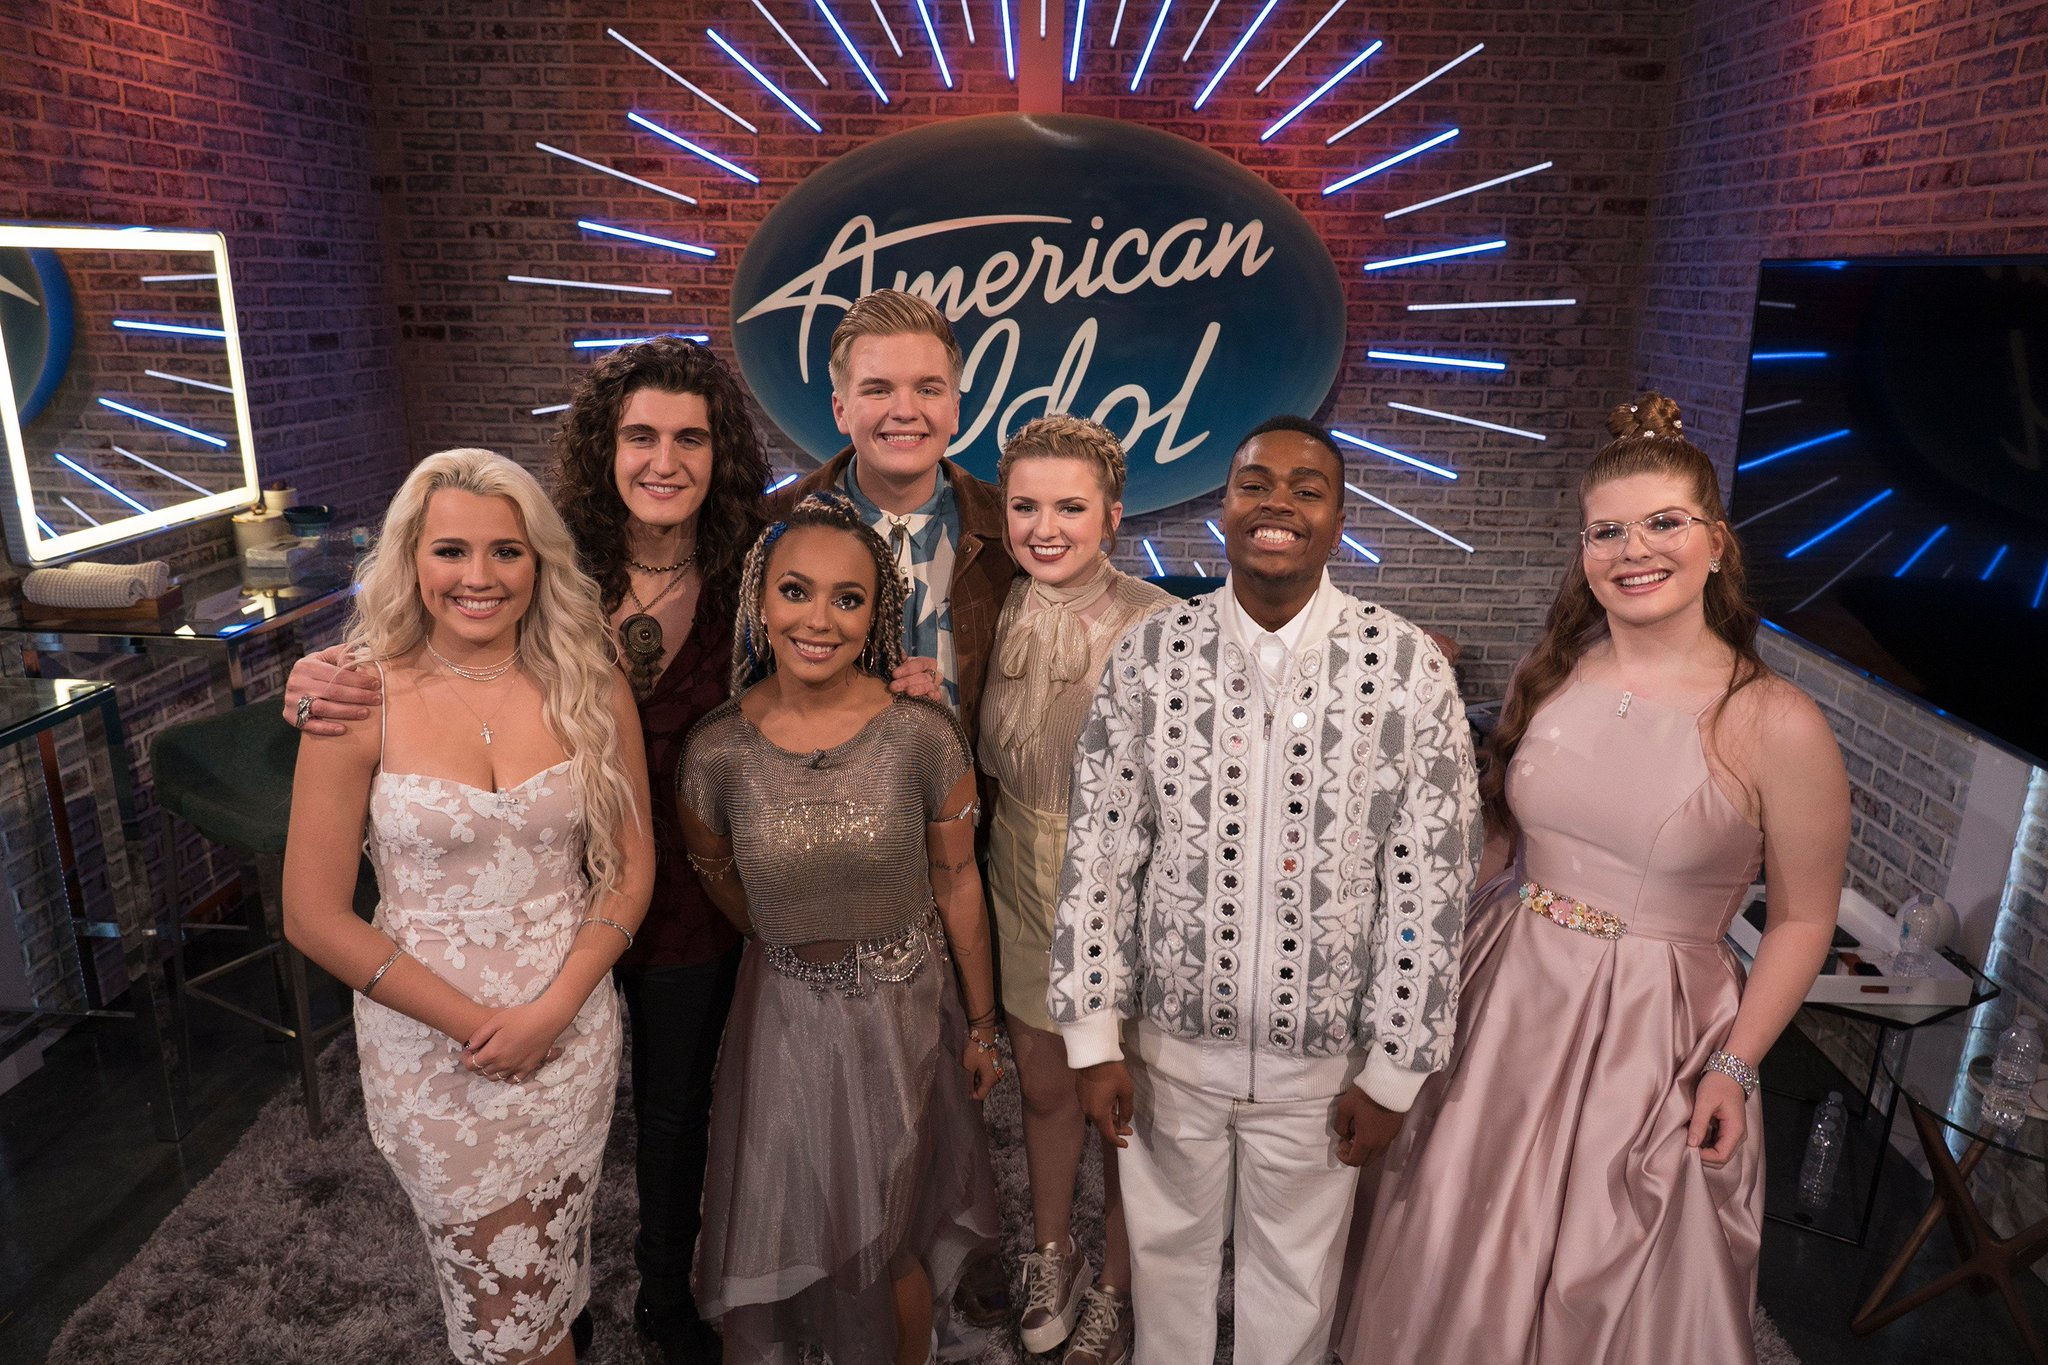 American Idol Results: Only 7 contestants remain in this year's competition (pic via ABC) https://t.co/vv8Eg5u4Ix https://t.co/a4t1vAtGjs